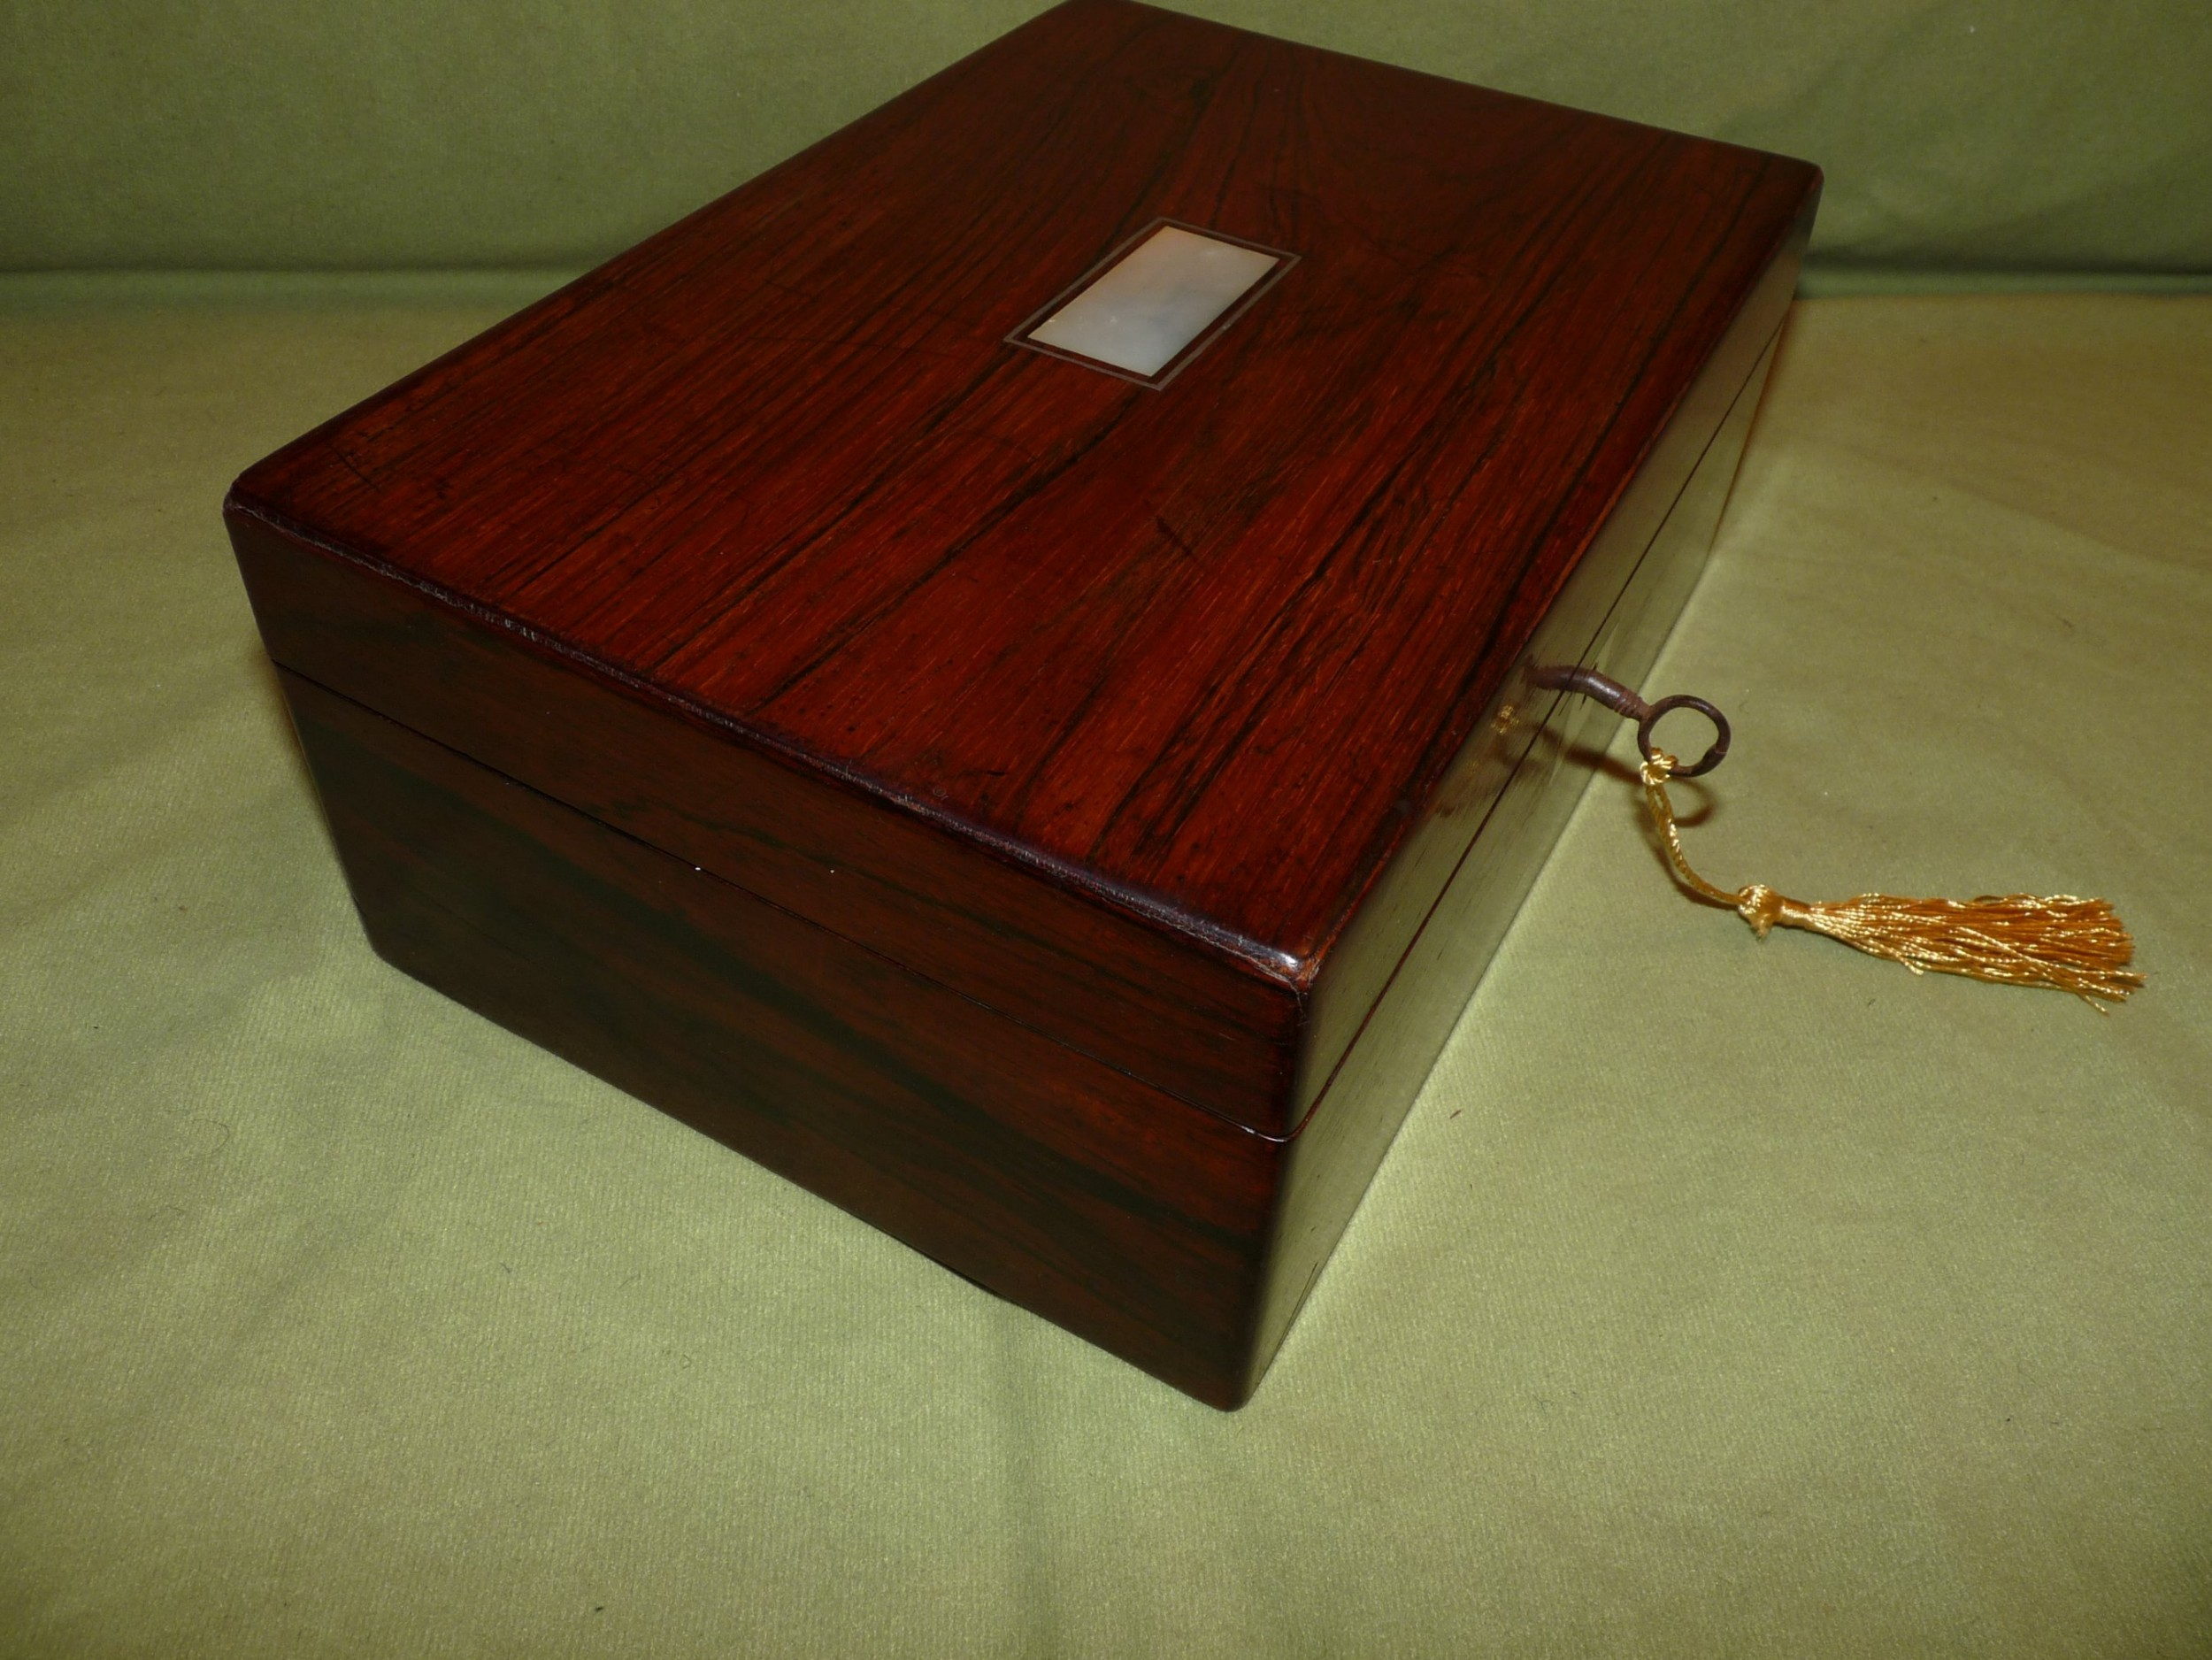 inlaid rosewood jewellery work box fitted tray c1875